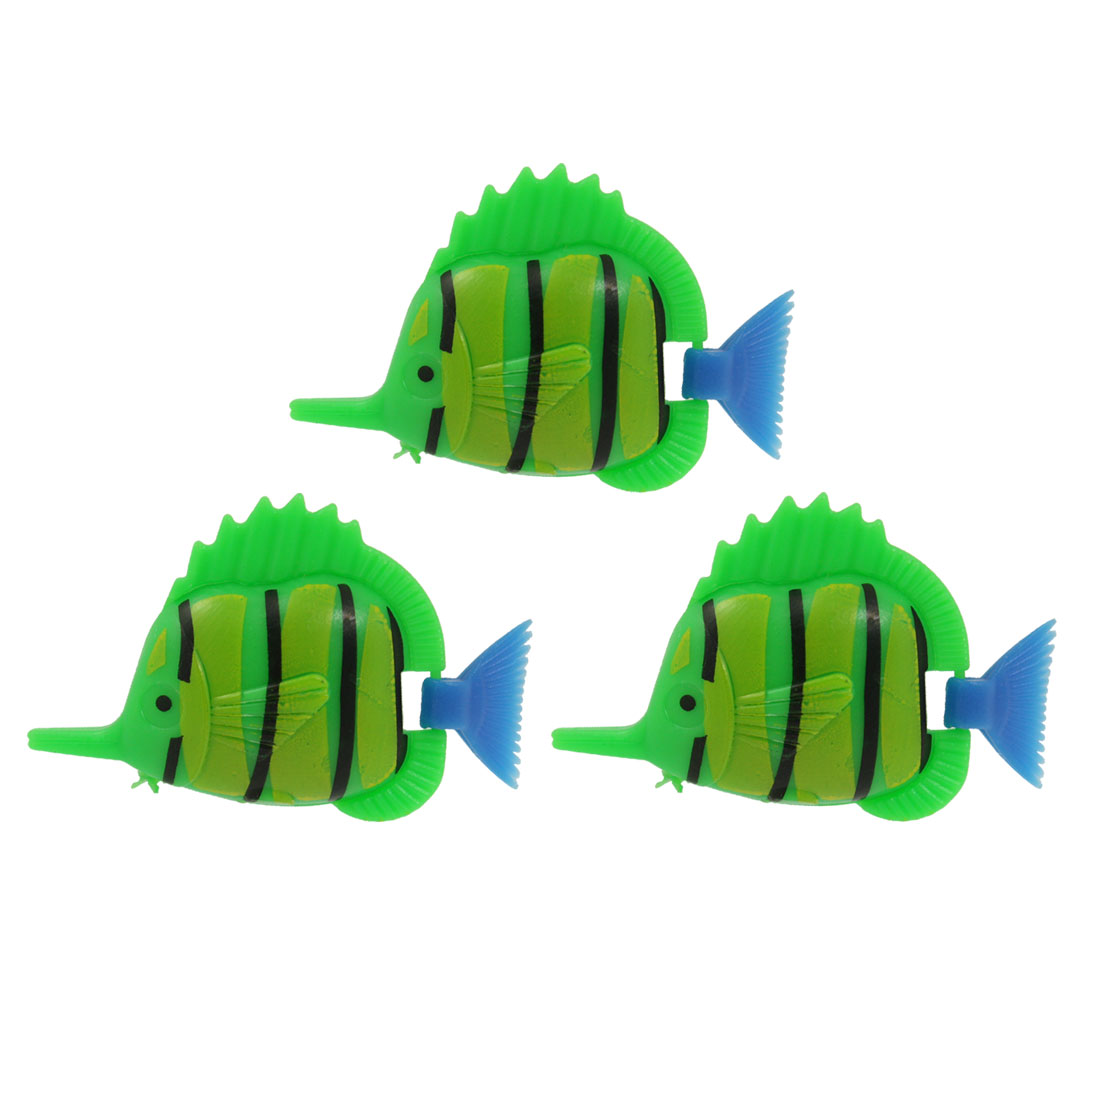 3 Pcs Aquarium Striped Flexible Swimming Plastic Fish Decoration